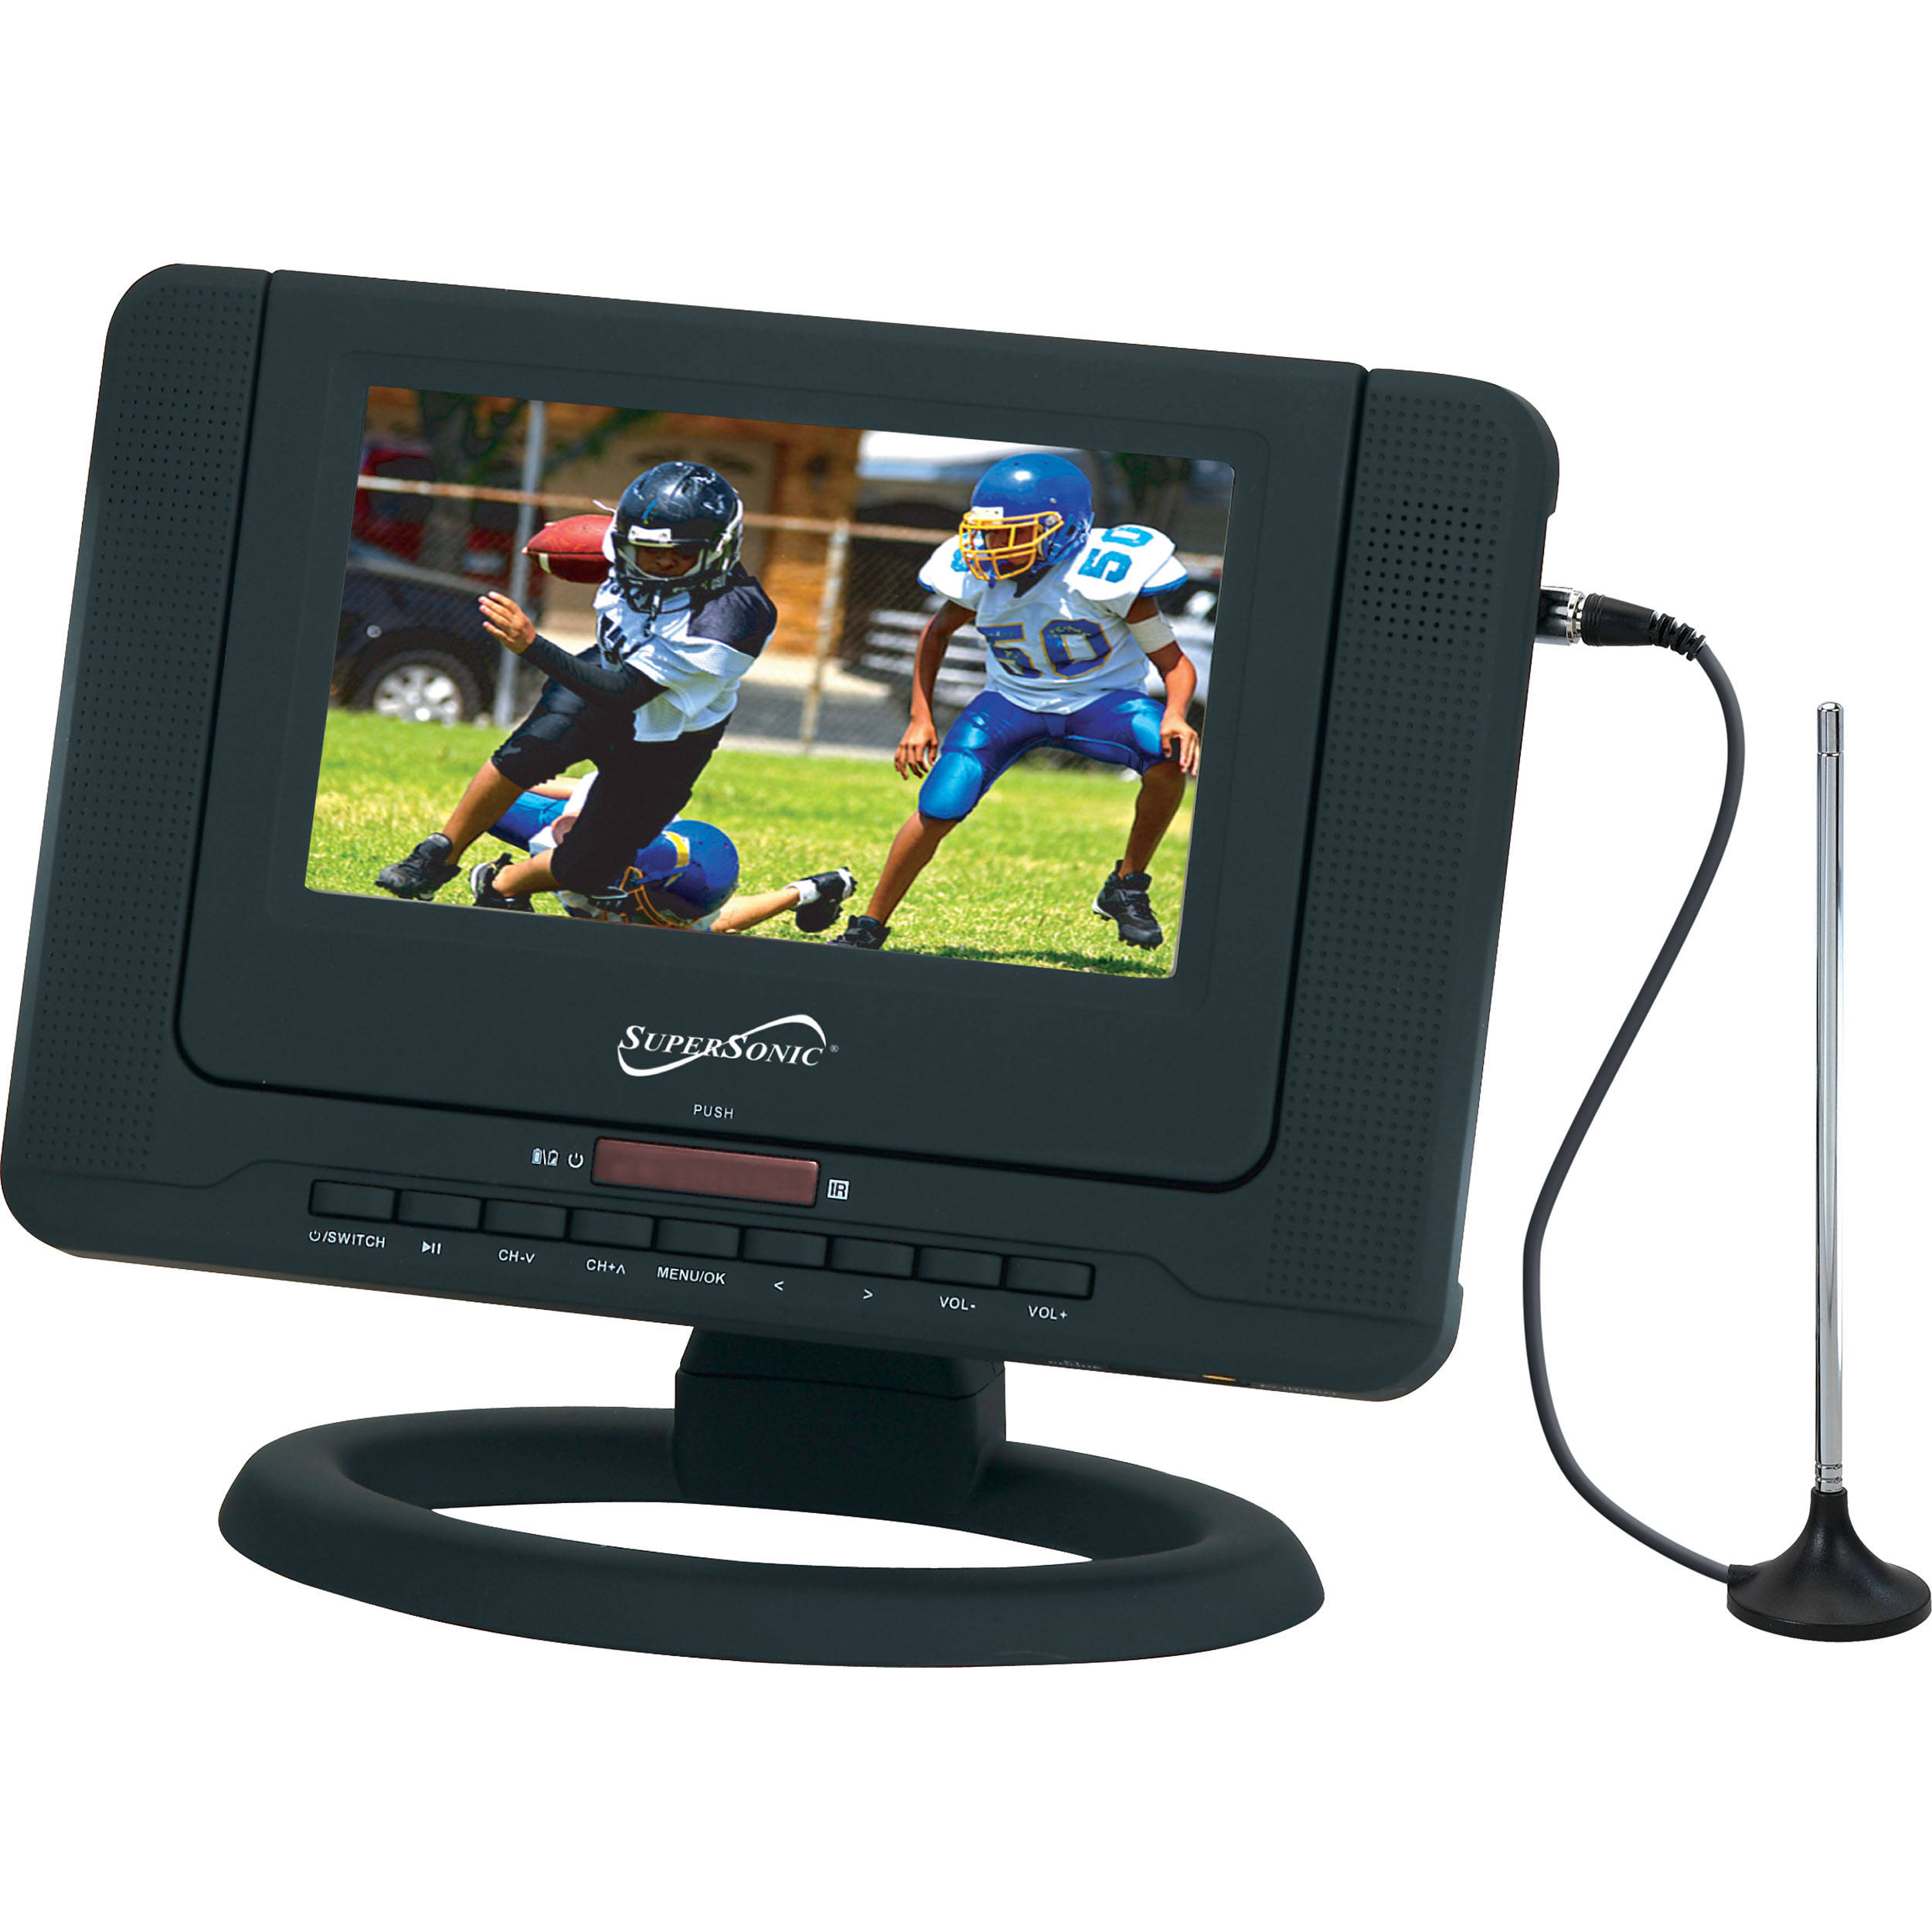 Supersonic Sc 491 7 Portable Lcd Tv With Dvd Player Sc 491